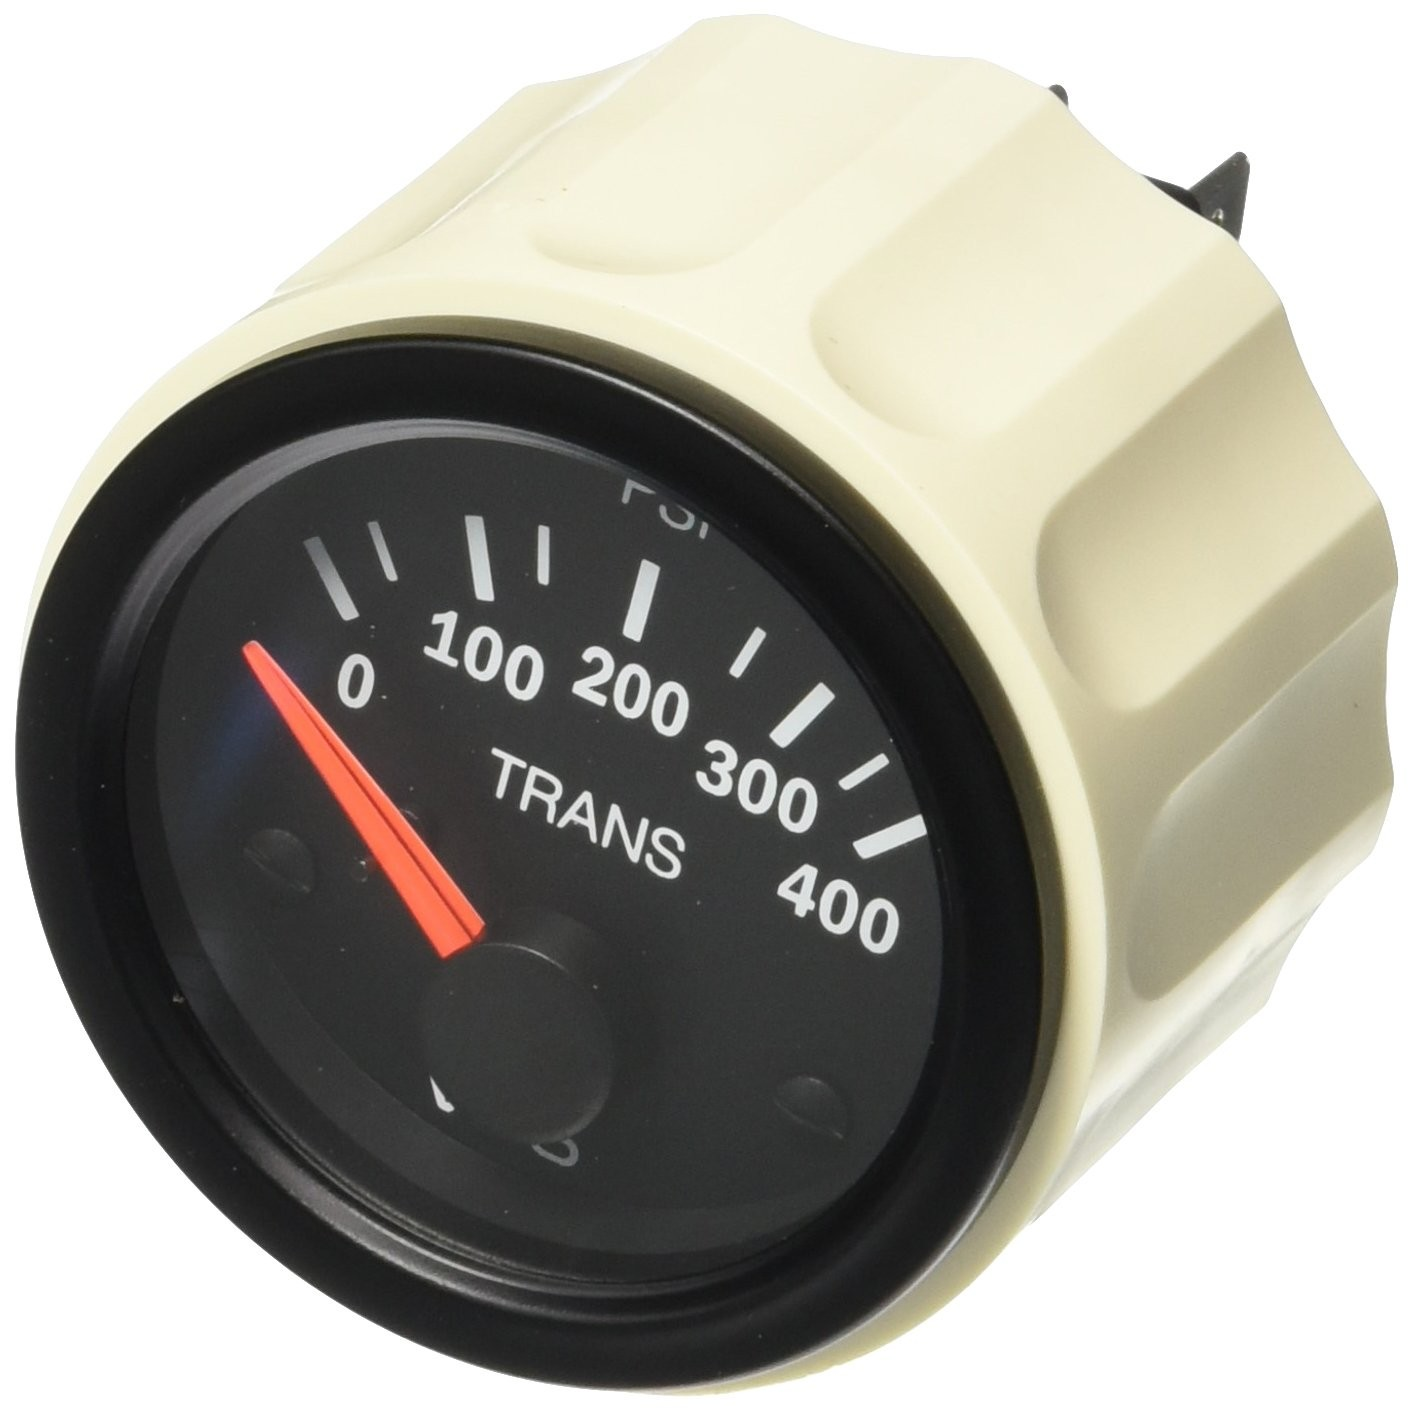 How to Wire A Vdo Transmission Pressure Gauge Vdo 350 110 Oil Pressure Gauge Of How to Wire A Vdo Transmission Pressure Gauge